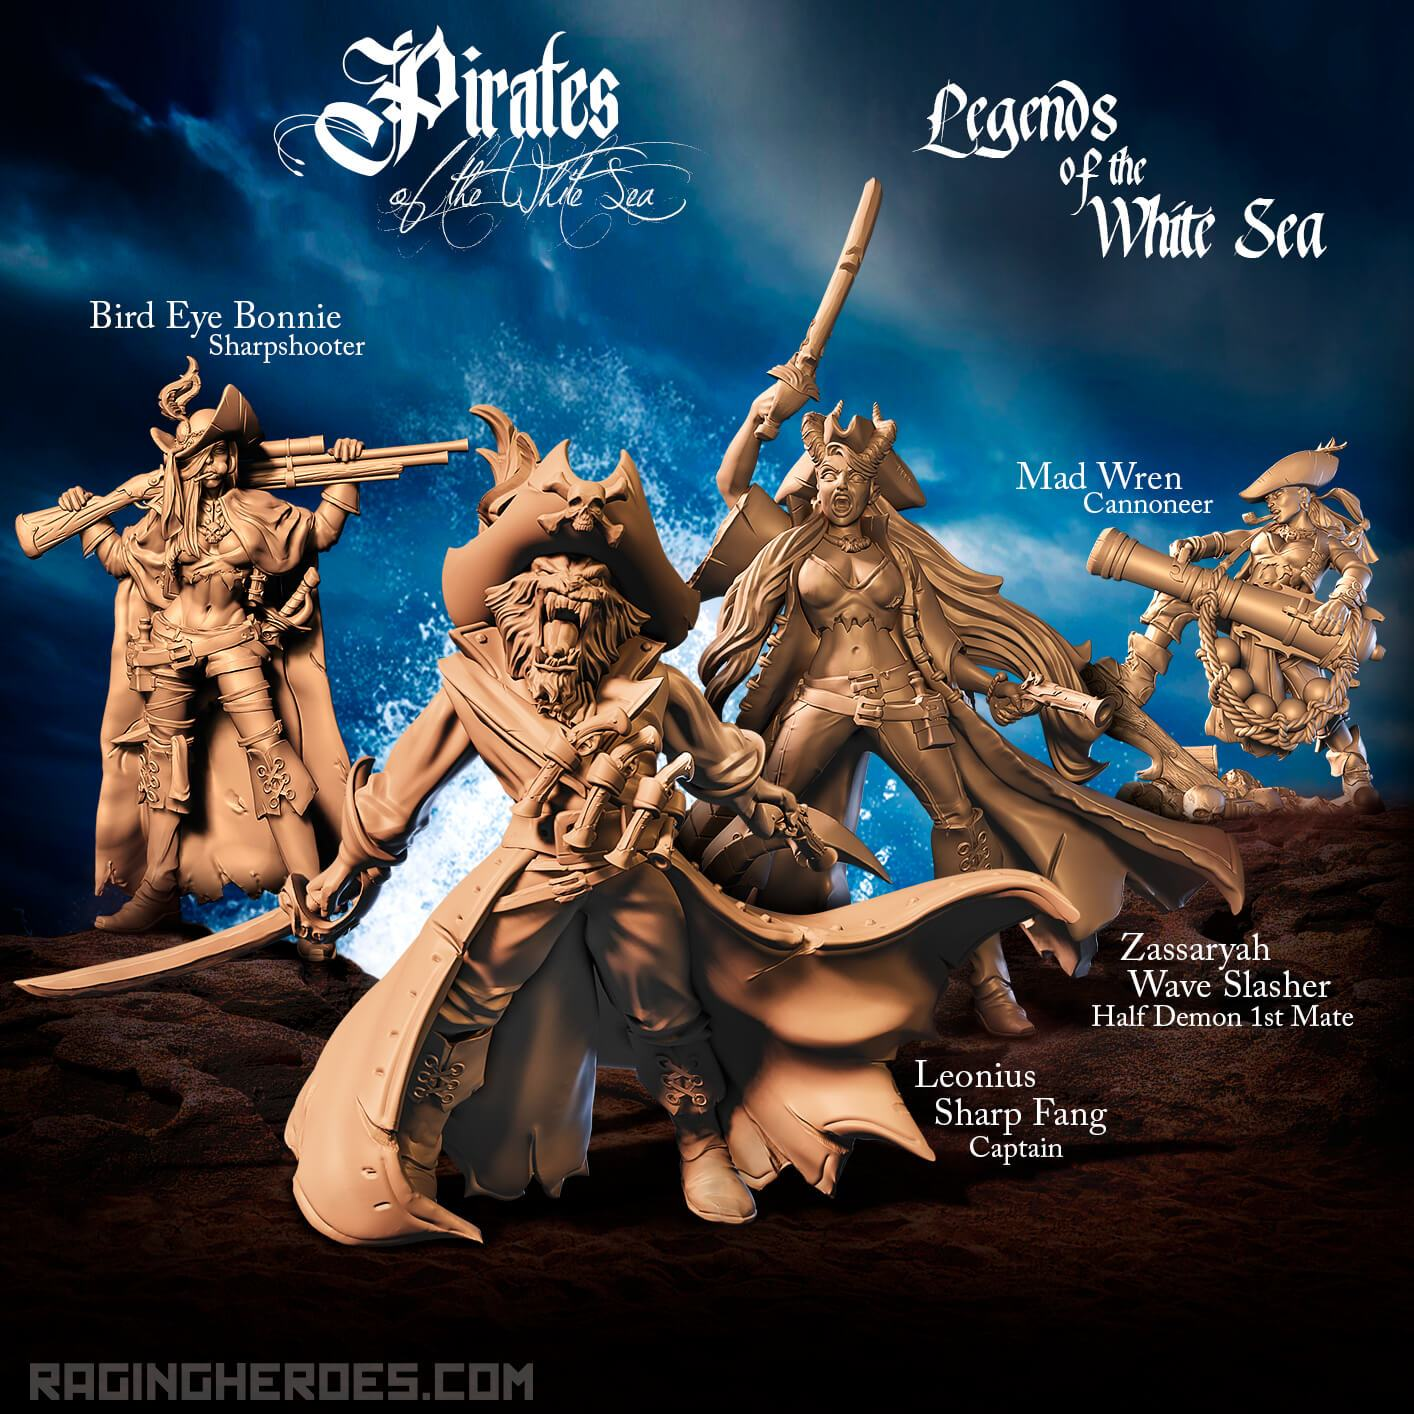 Legends Of The White Sea - Raging Heroes